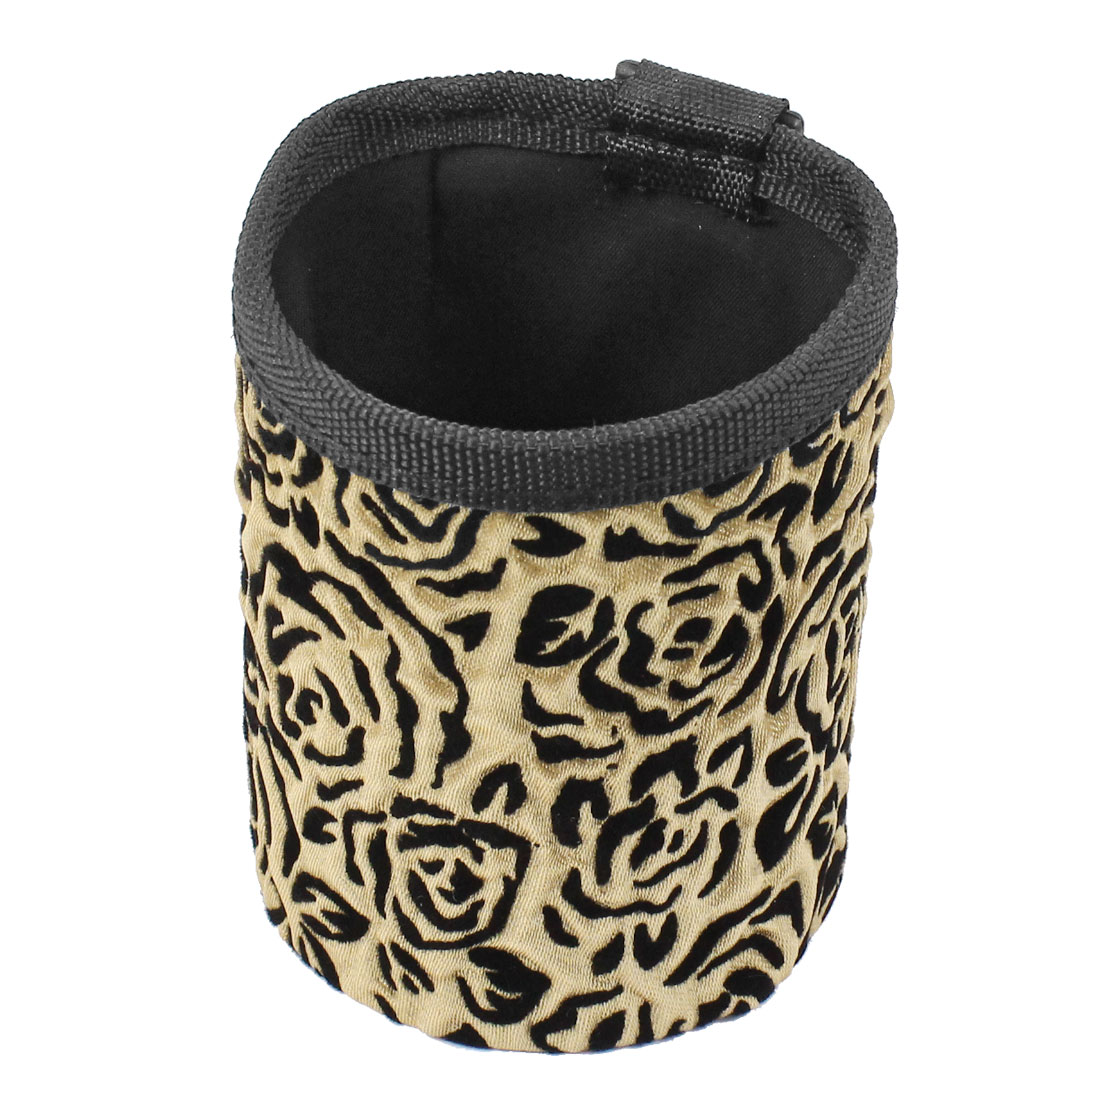 Gold Tone Black Flower Pattern Cylinder Shape Phone Pouch Holder